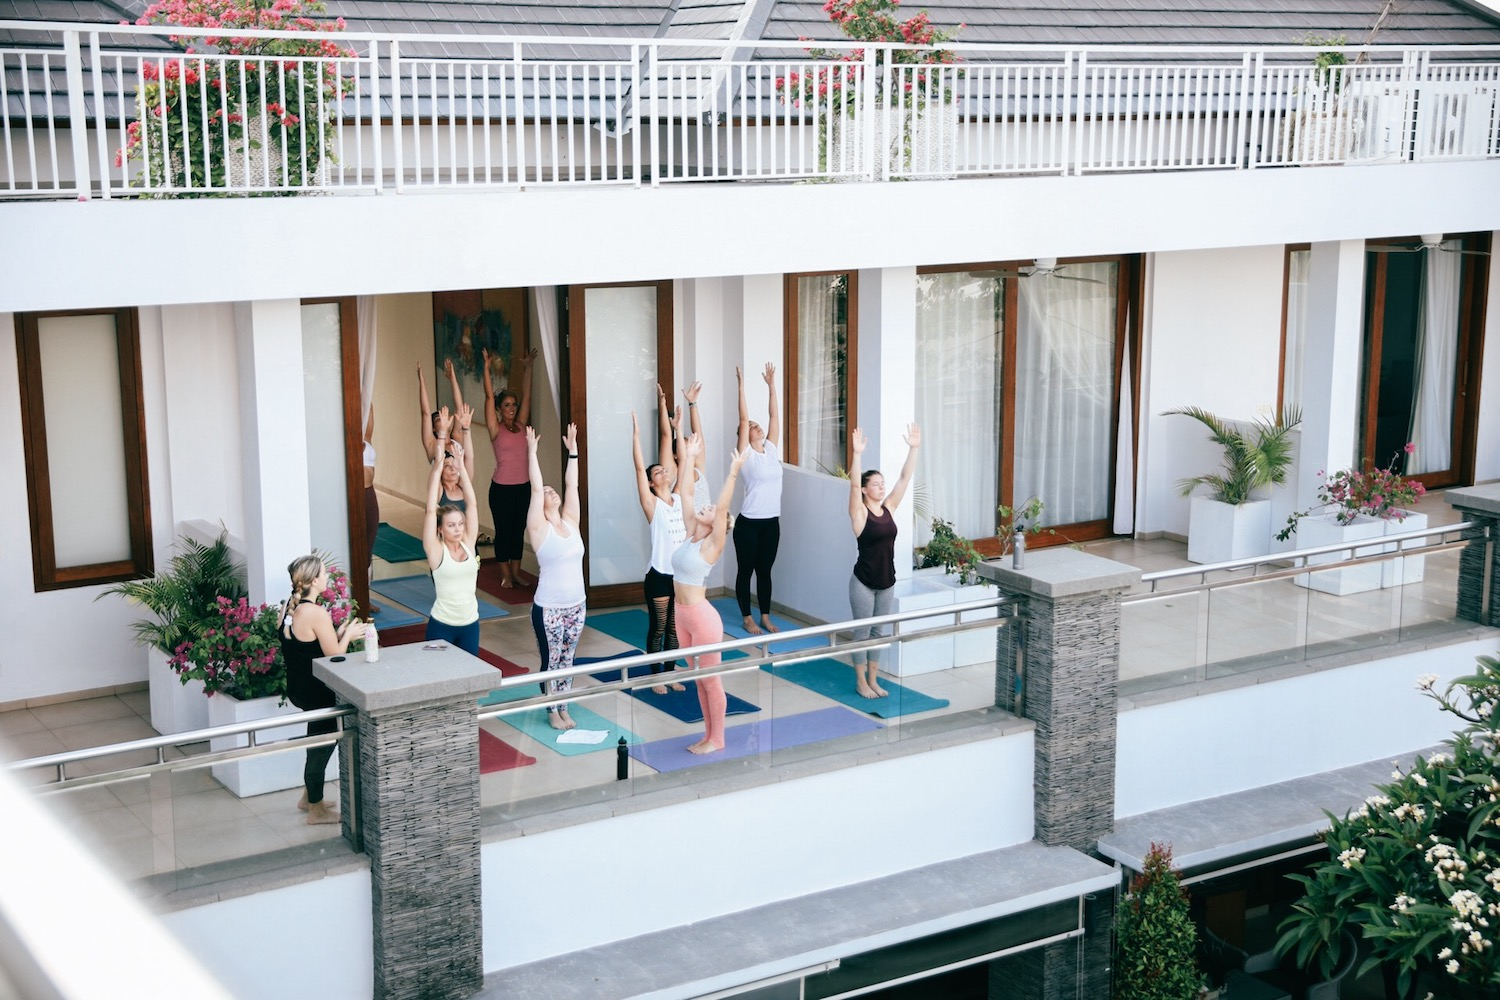 Lesley Murphy teaches yoga LimtiLes in Bali